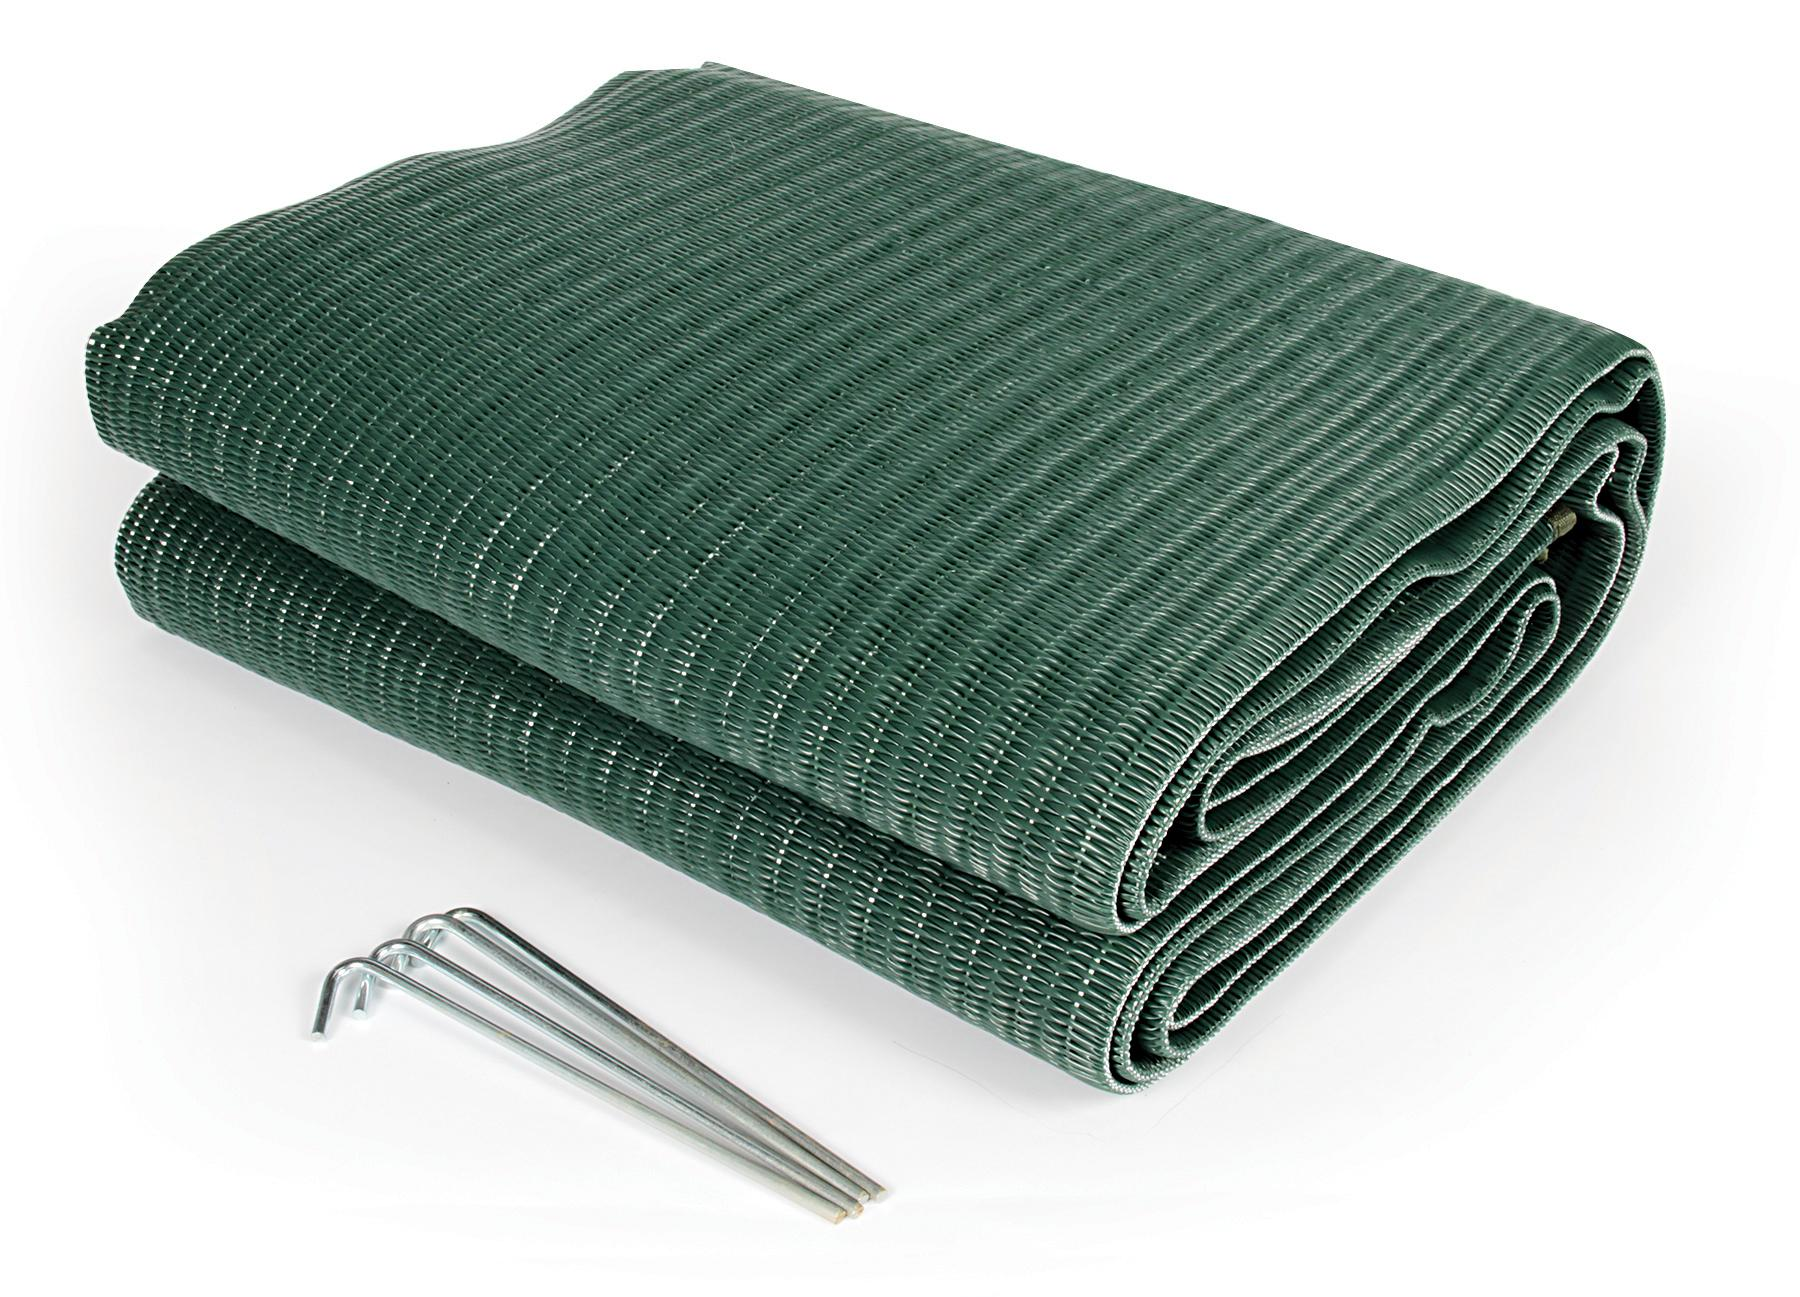 Amazon.com: Camco 42880 Reversible Awning Leisure Mat-6' X ...